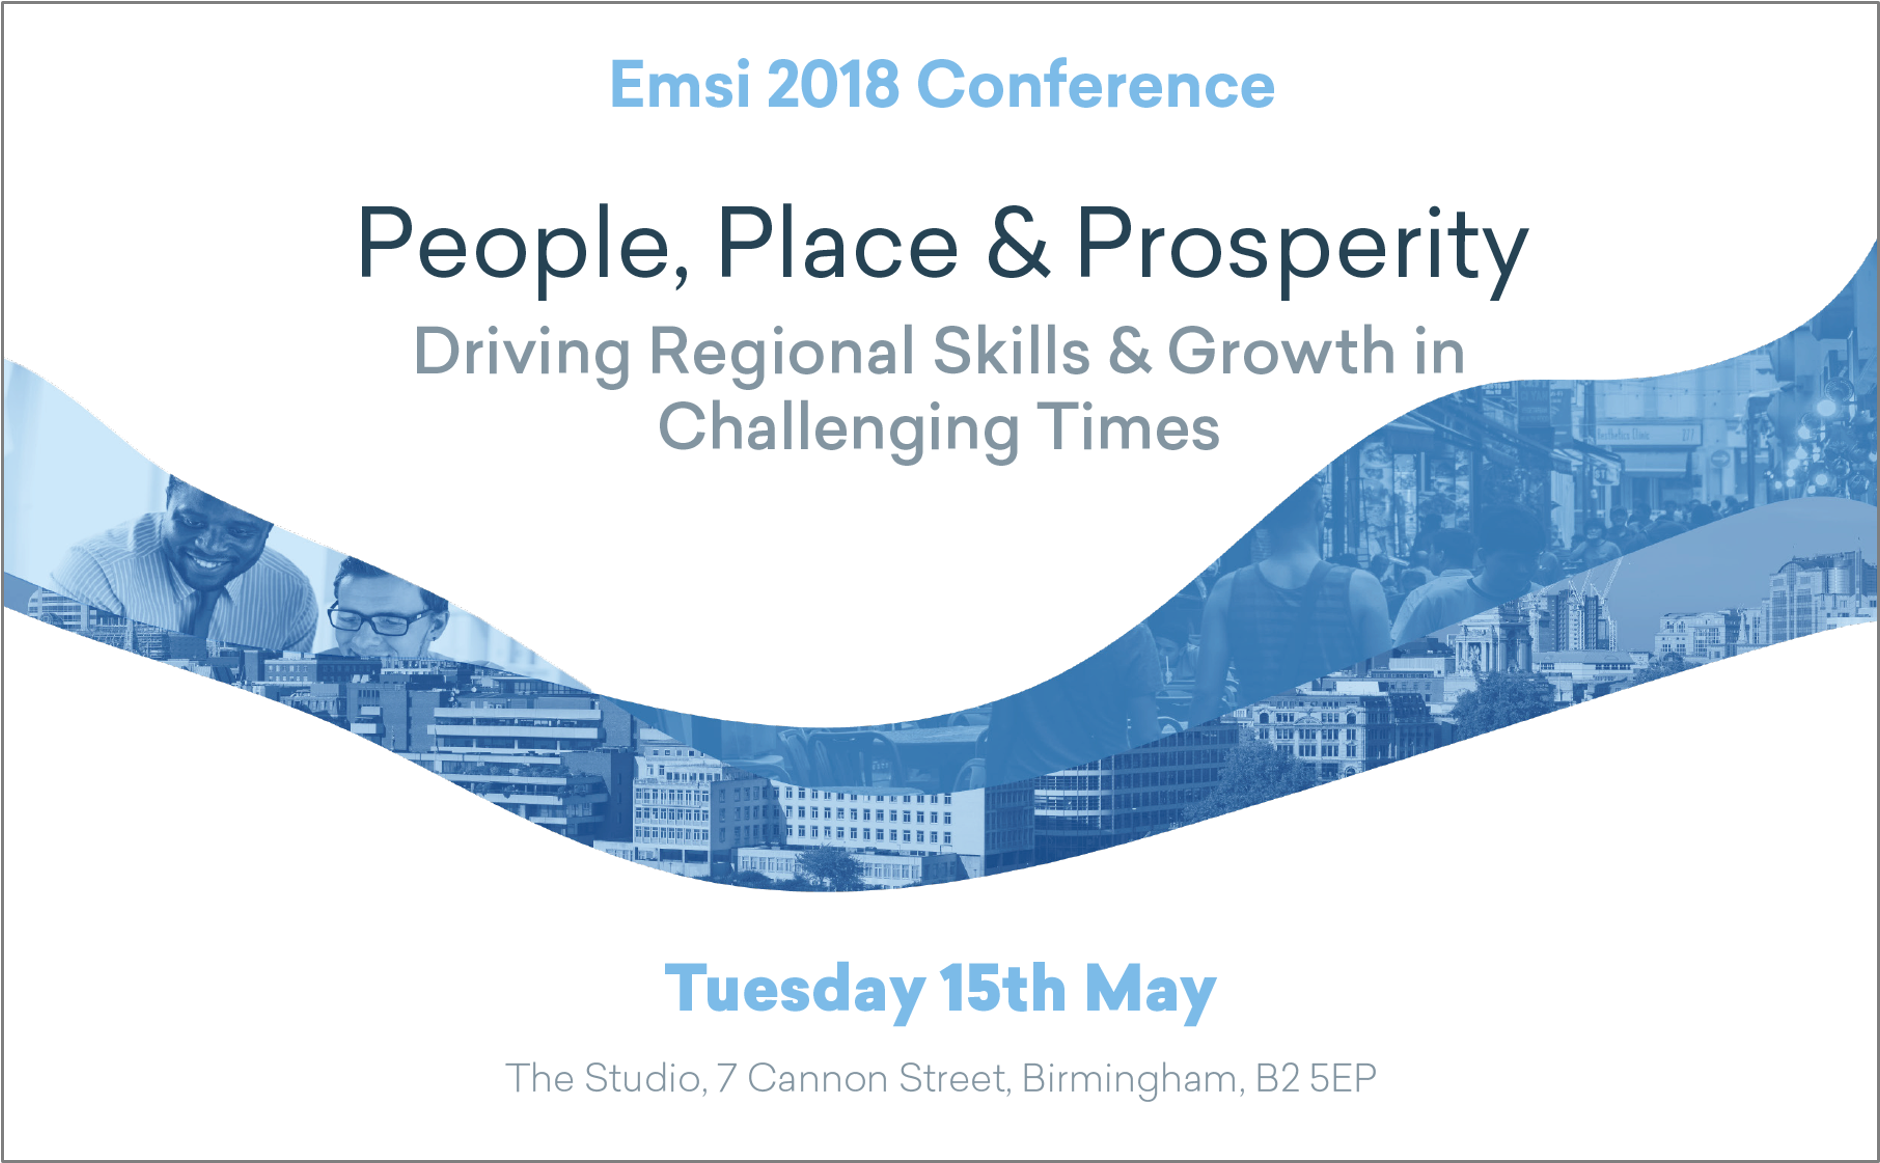 Five Reasons to Come to the Emsi 2018 Conference - Emsi